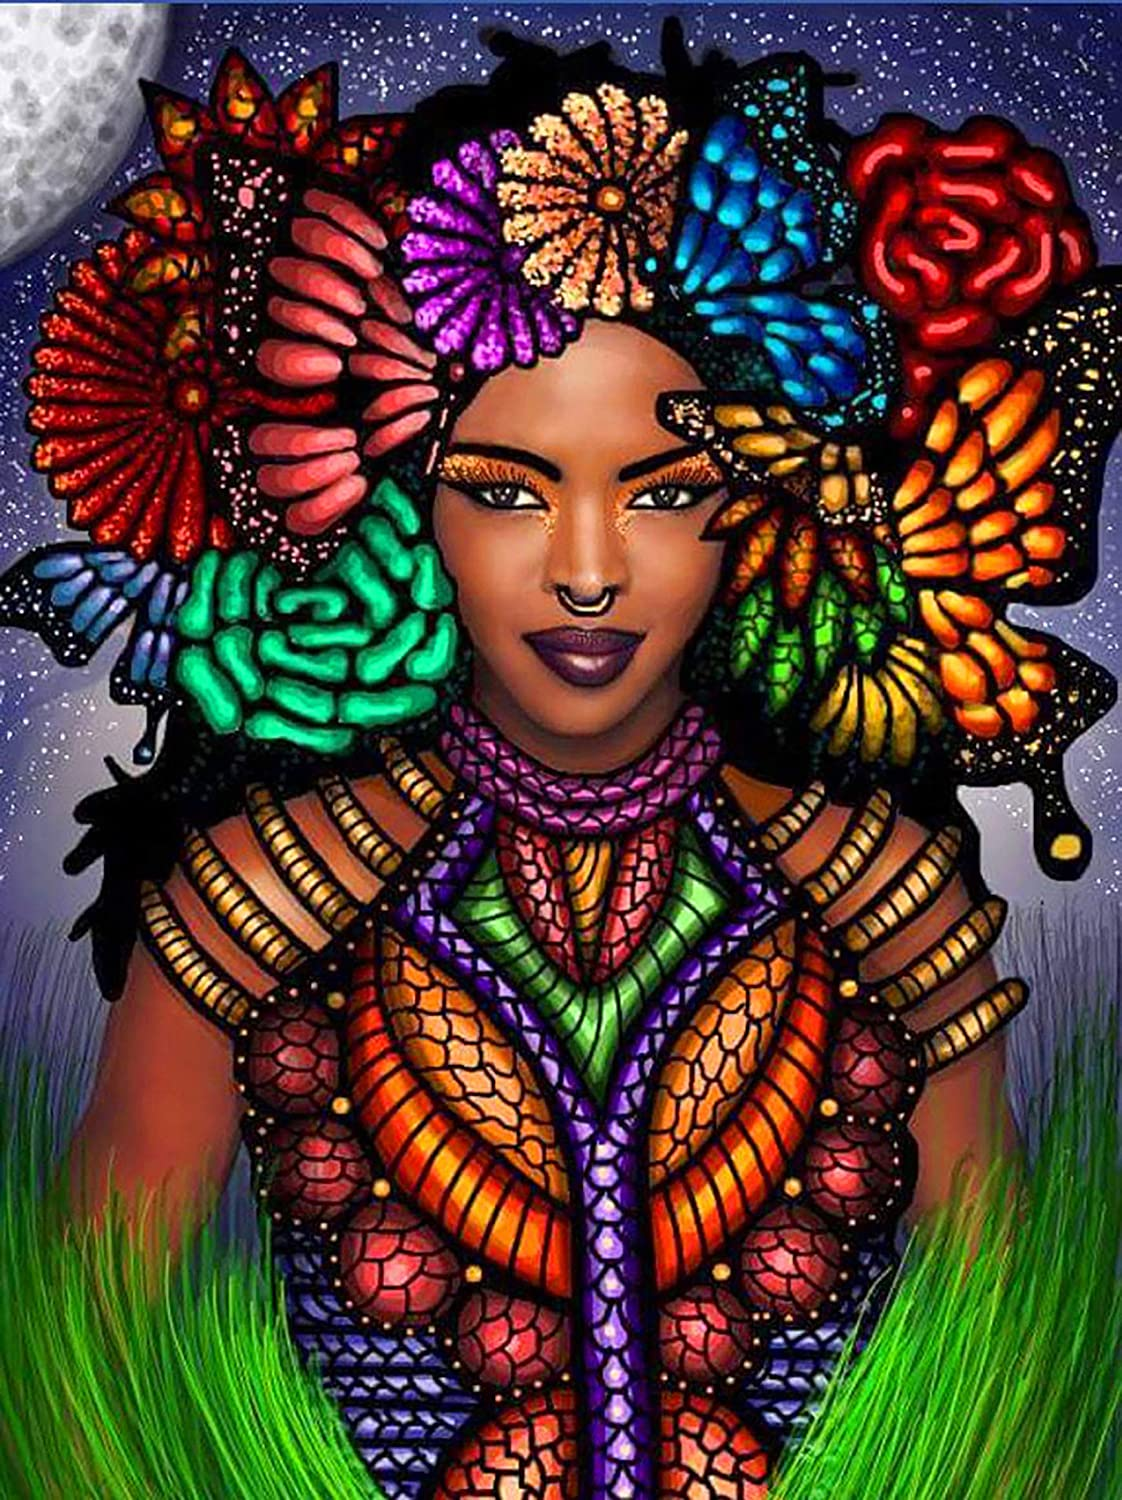 Ginfonr 5D Diamond Painting African Custom Women, Exotic Beauties, by Number Kits Girls Fairies Paint with Diamonds Full Drill Art Crystal DIY Embroidery Rhinestone Decor Craft (12x16 inch)-Gms7